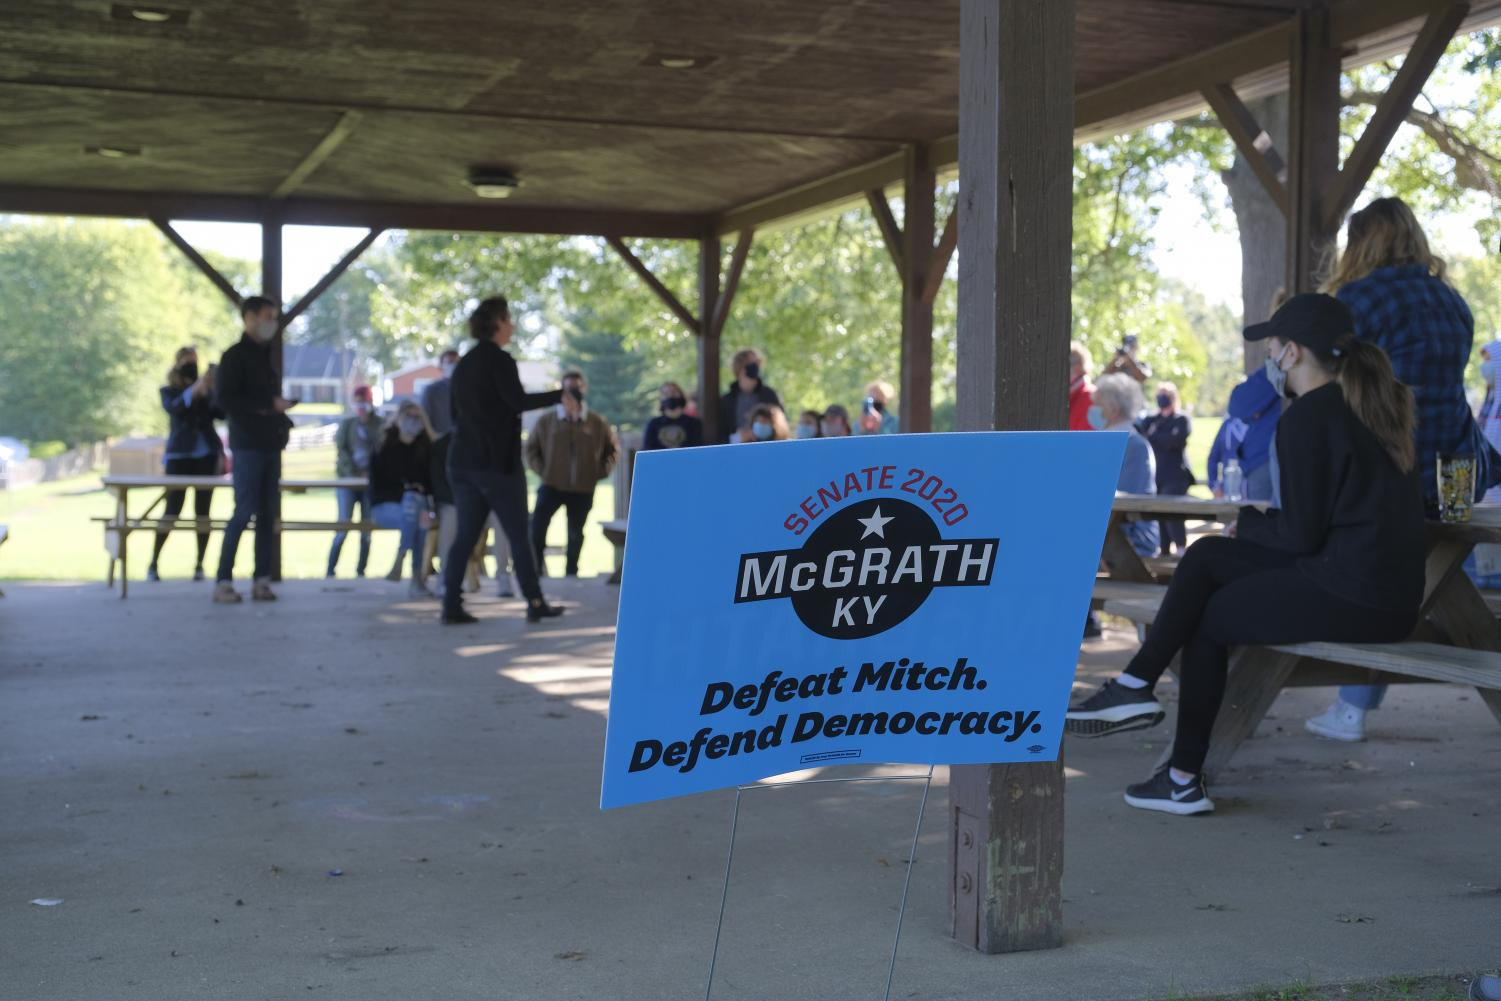 """A blue campaign sign says """"Defeat Mitch. Defend Democracy."""""""